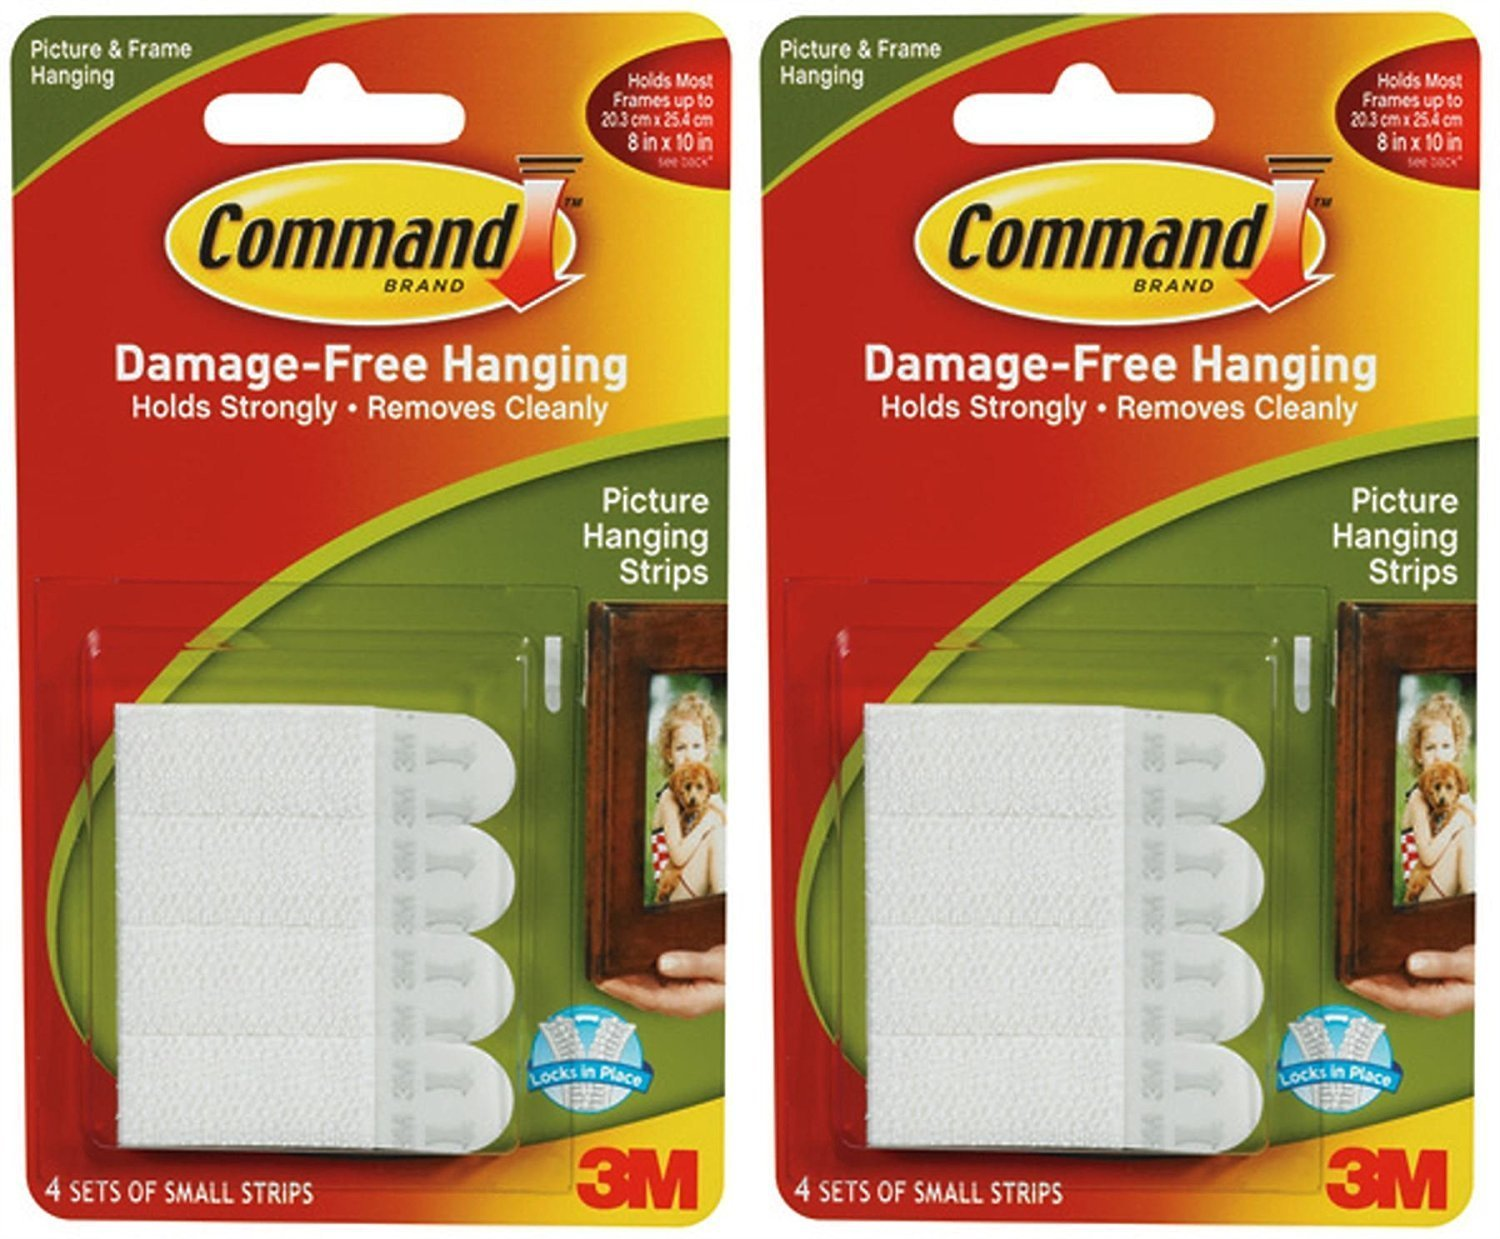 2 x 3M Command Small Picture Strips Set Of 4 Strips TRTI11A1473